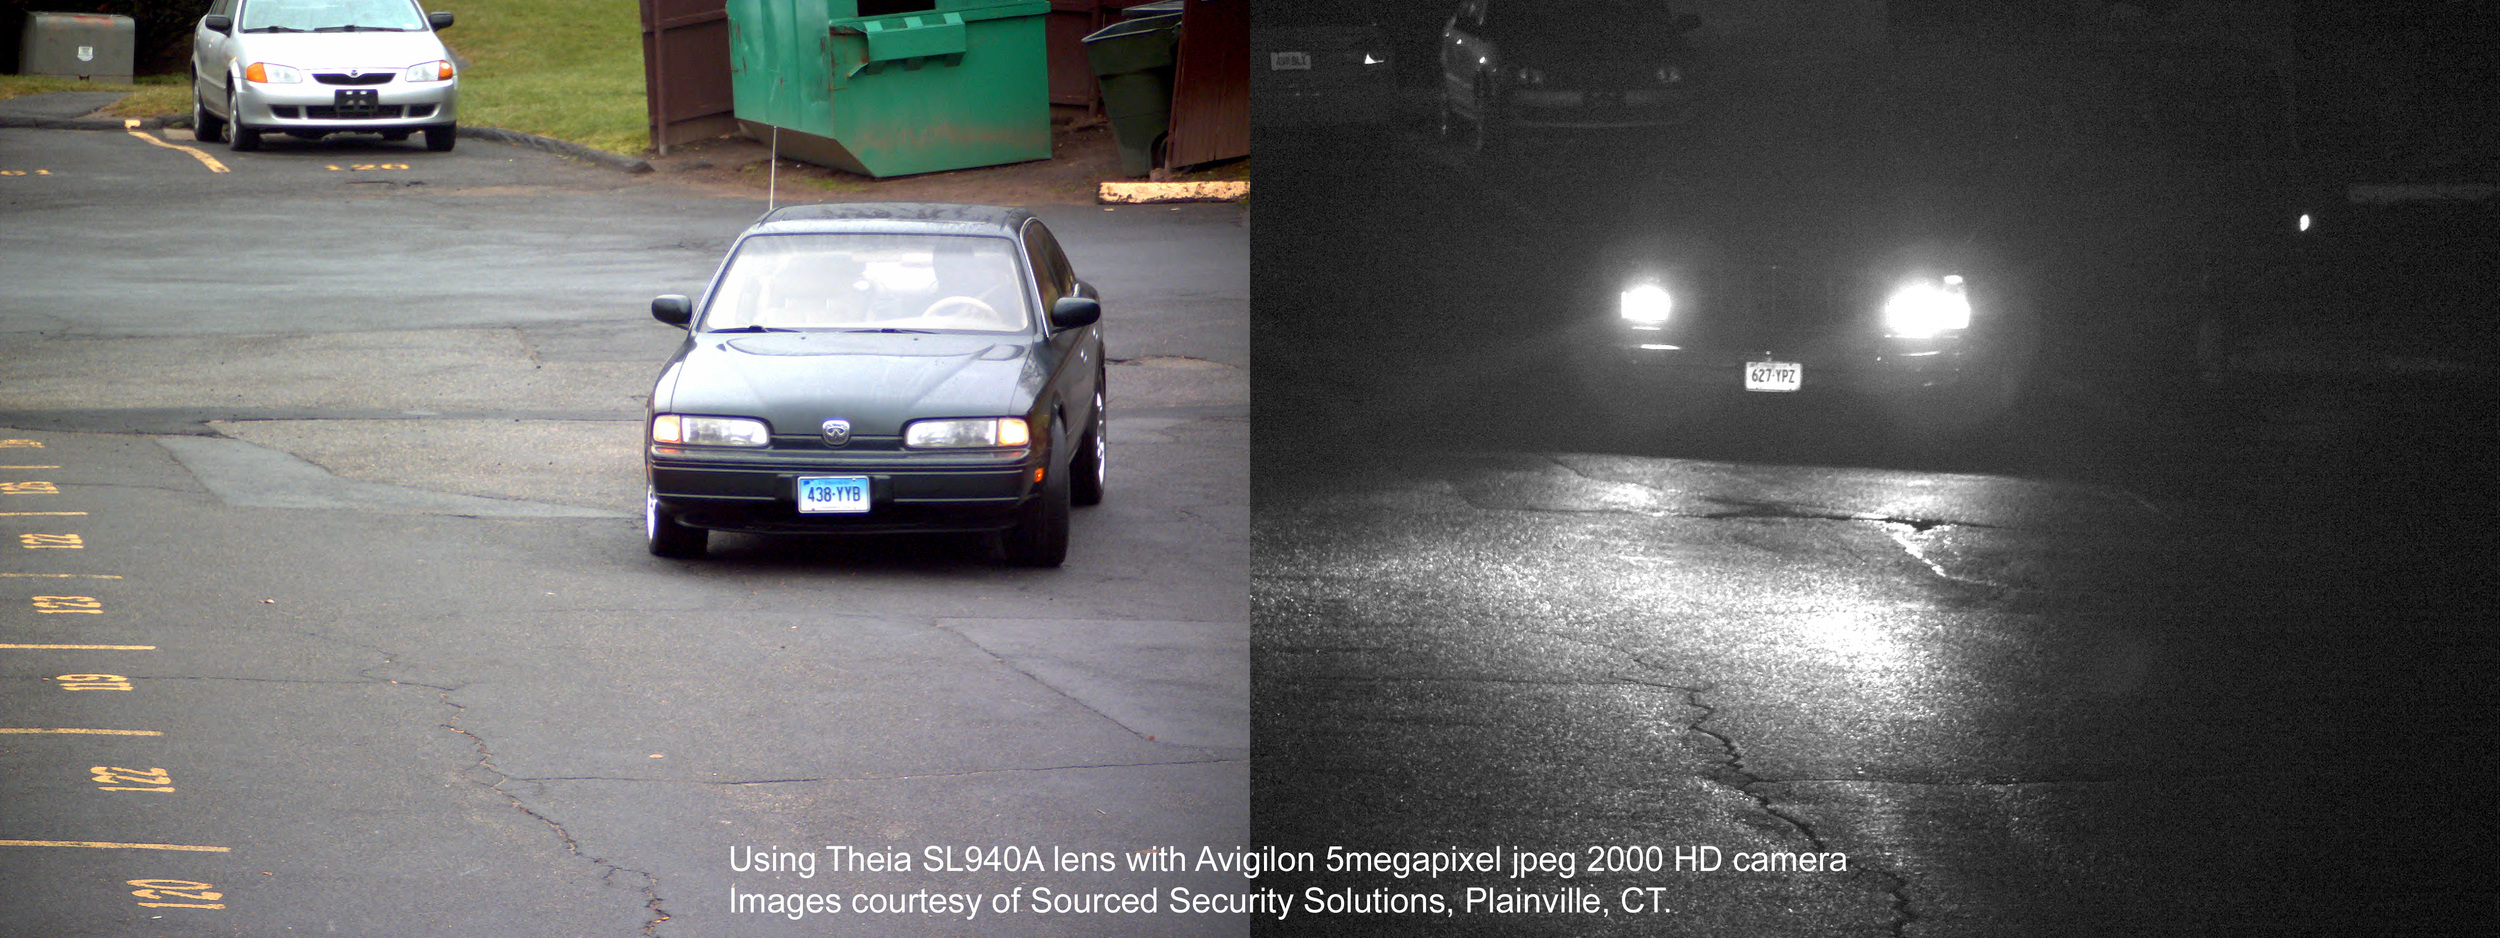 License plate recognition (LPR), just one of the many applications for high quality telephoto lenses.